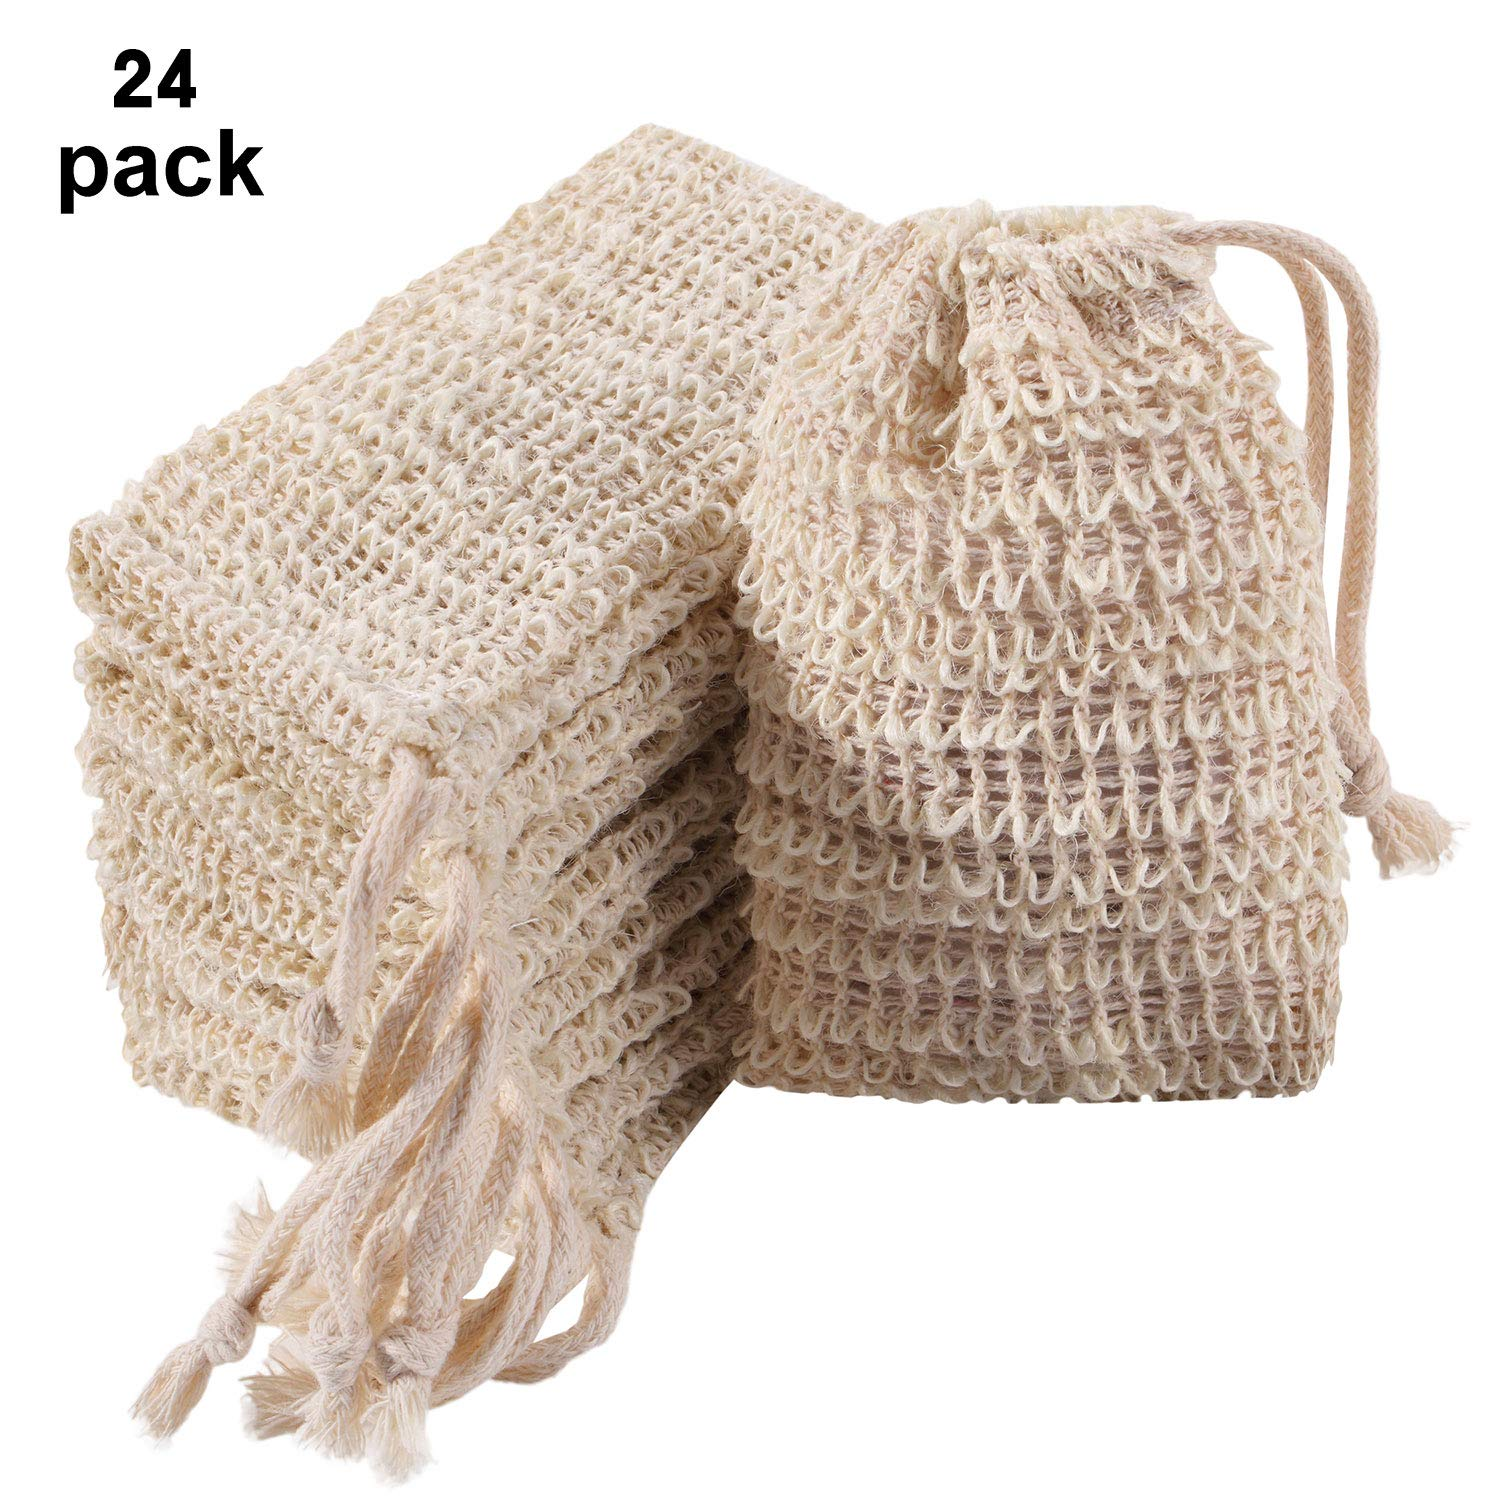 Trounistro 24 Pack Soap Exfoliating Bag Pouch Soap Saver Natural Ramie Soap Bag Hand Made Soap Bag Mesh Soap with Drawstring for Bath & Shower Use